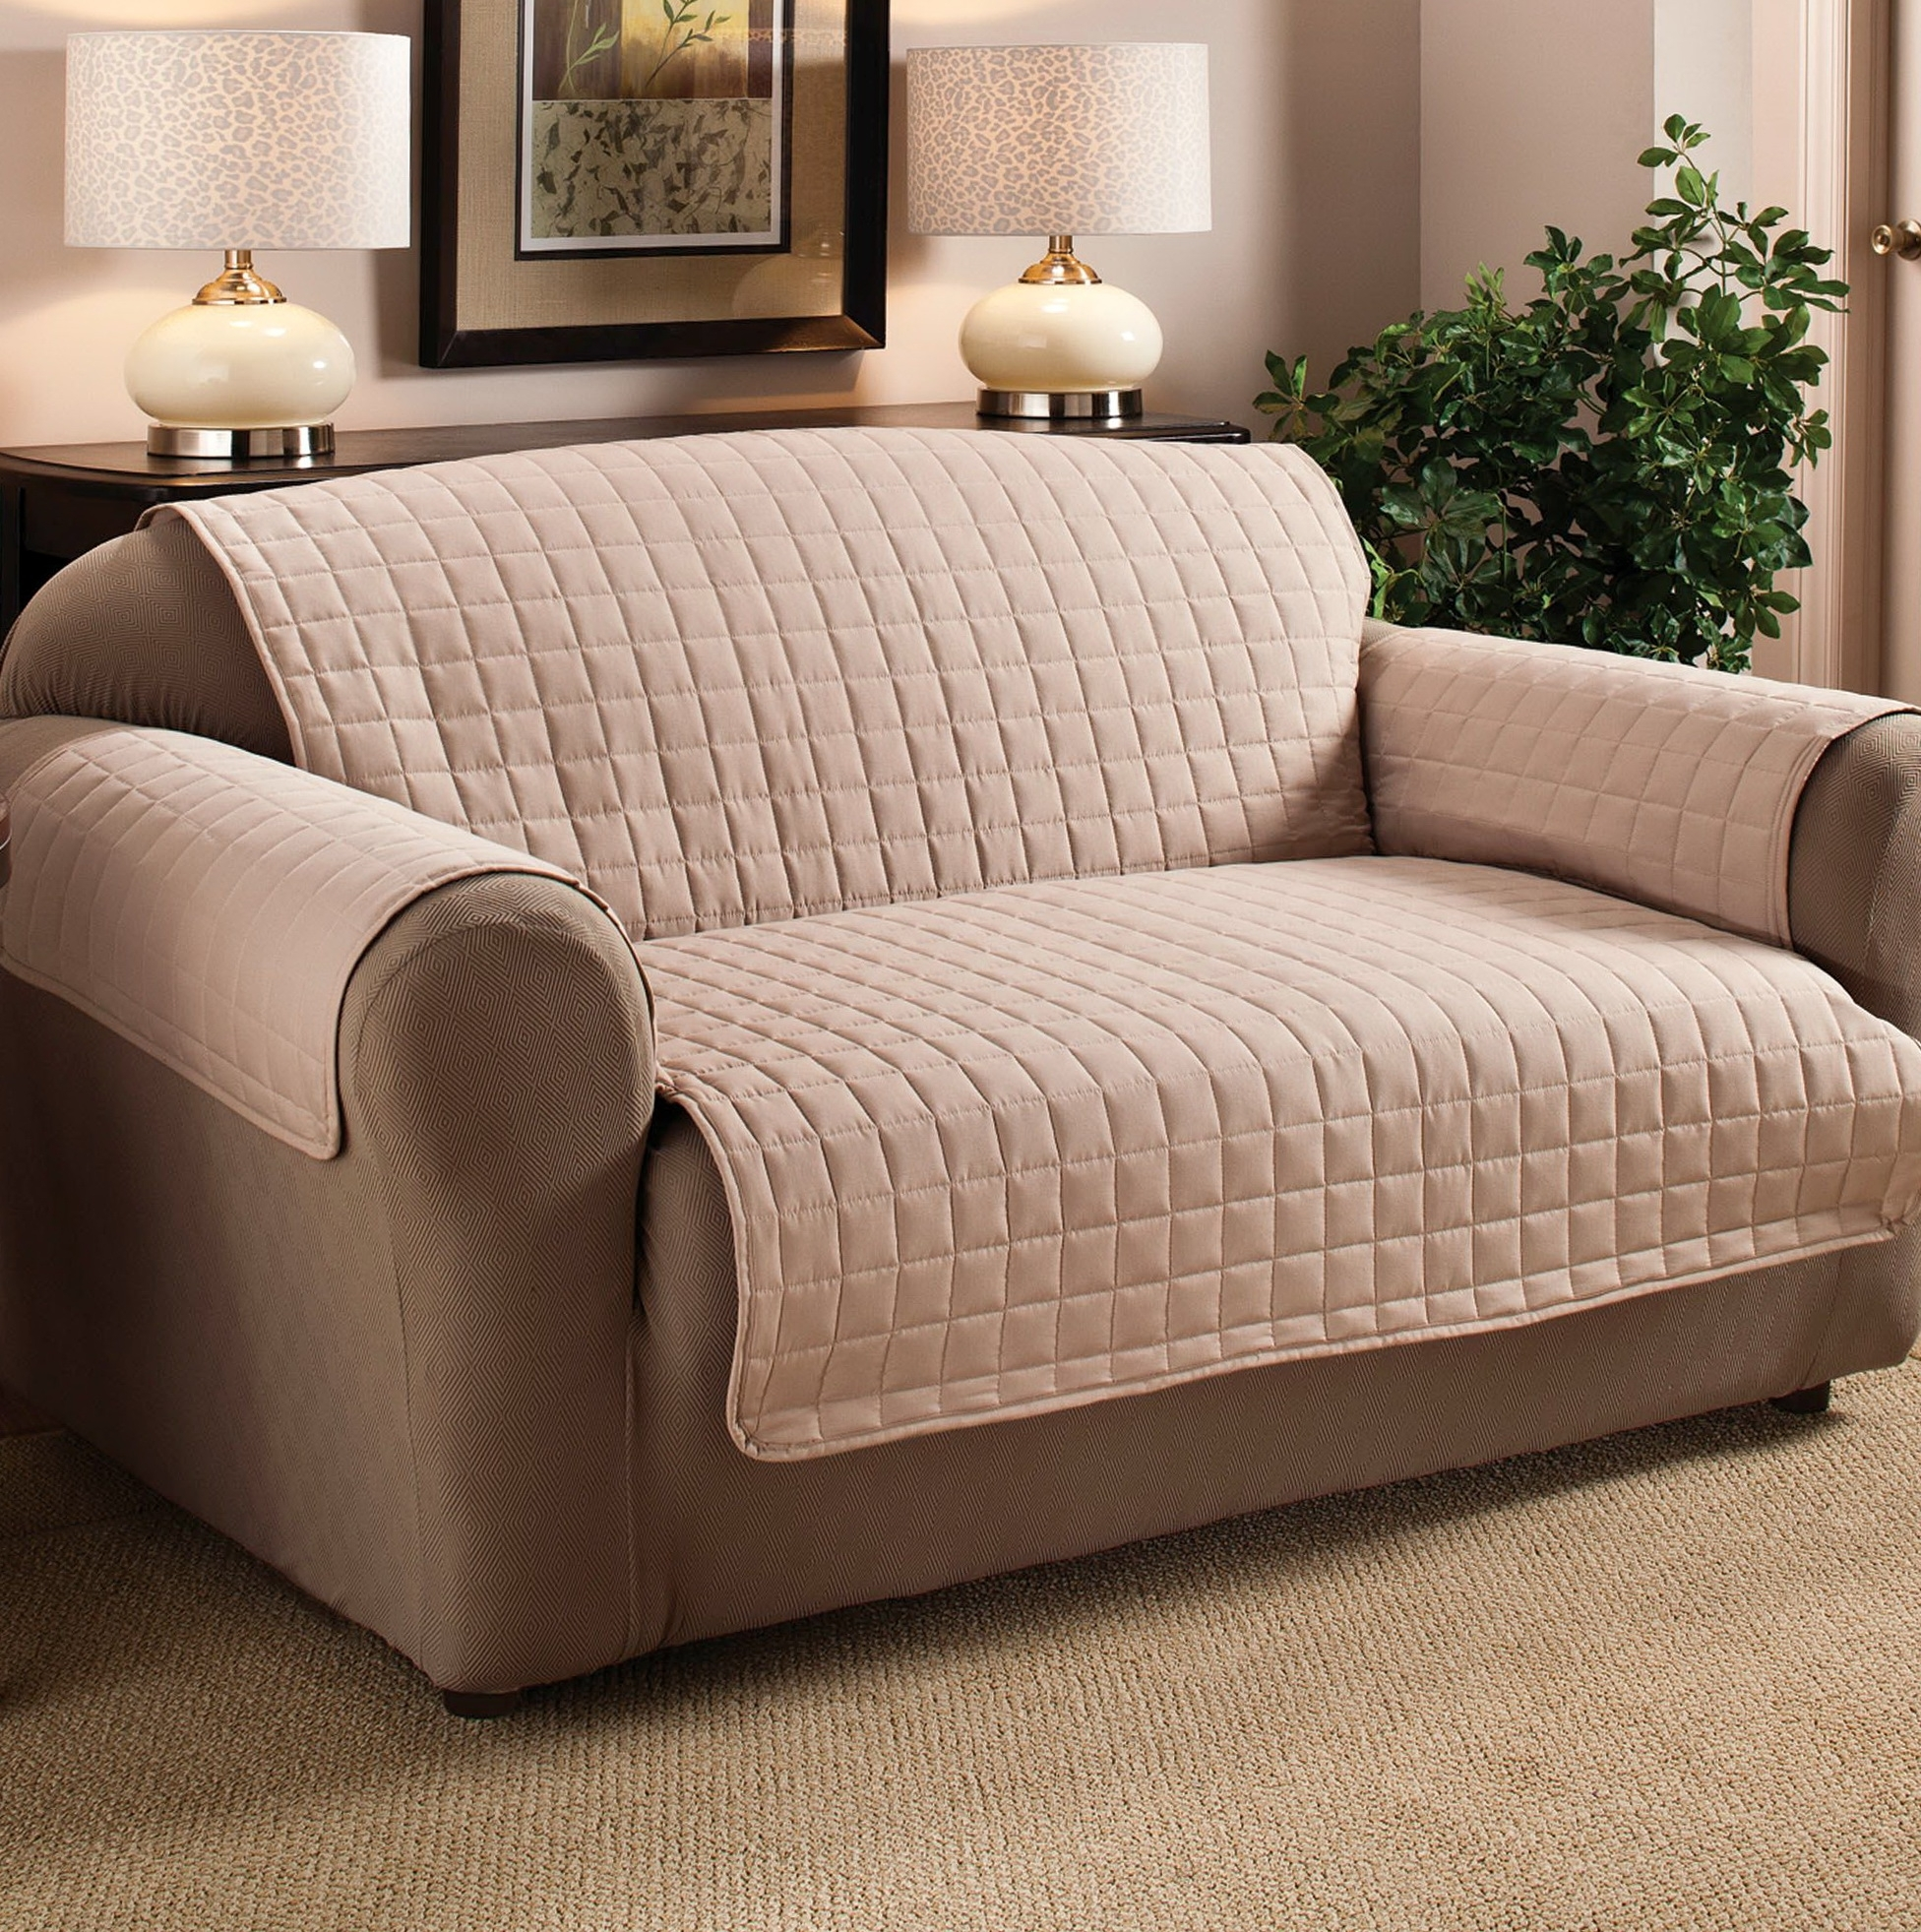 Fashionable Lovely Chaise Lounge Sofa Covers 92 Sofas And Couches Ideas With In Chaise Couch Covers (View 13 of 15)